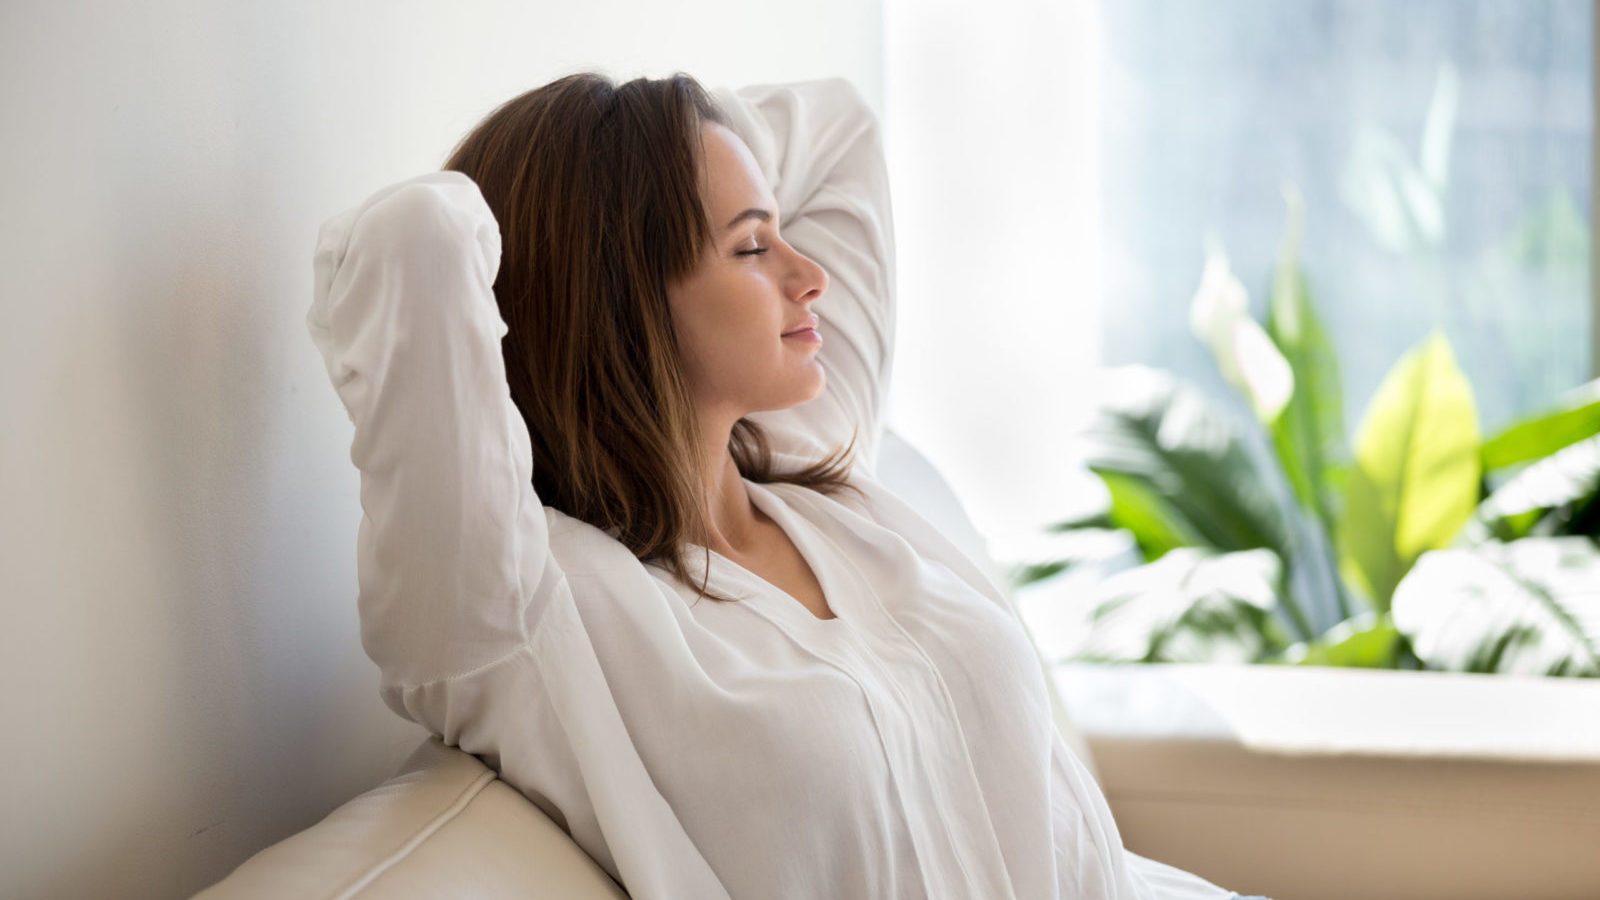 Relaxed woman resting breathing fresh air and practicing mindfulness